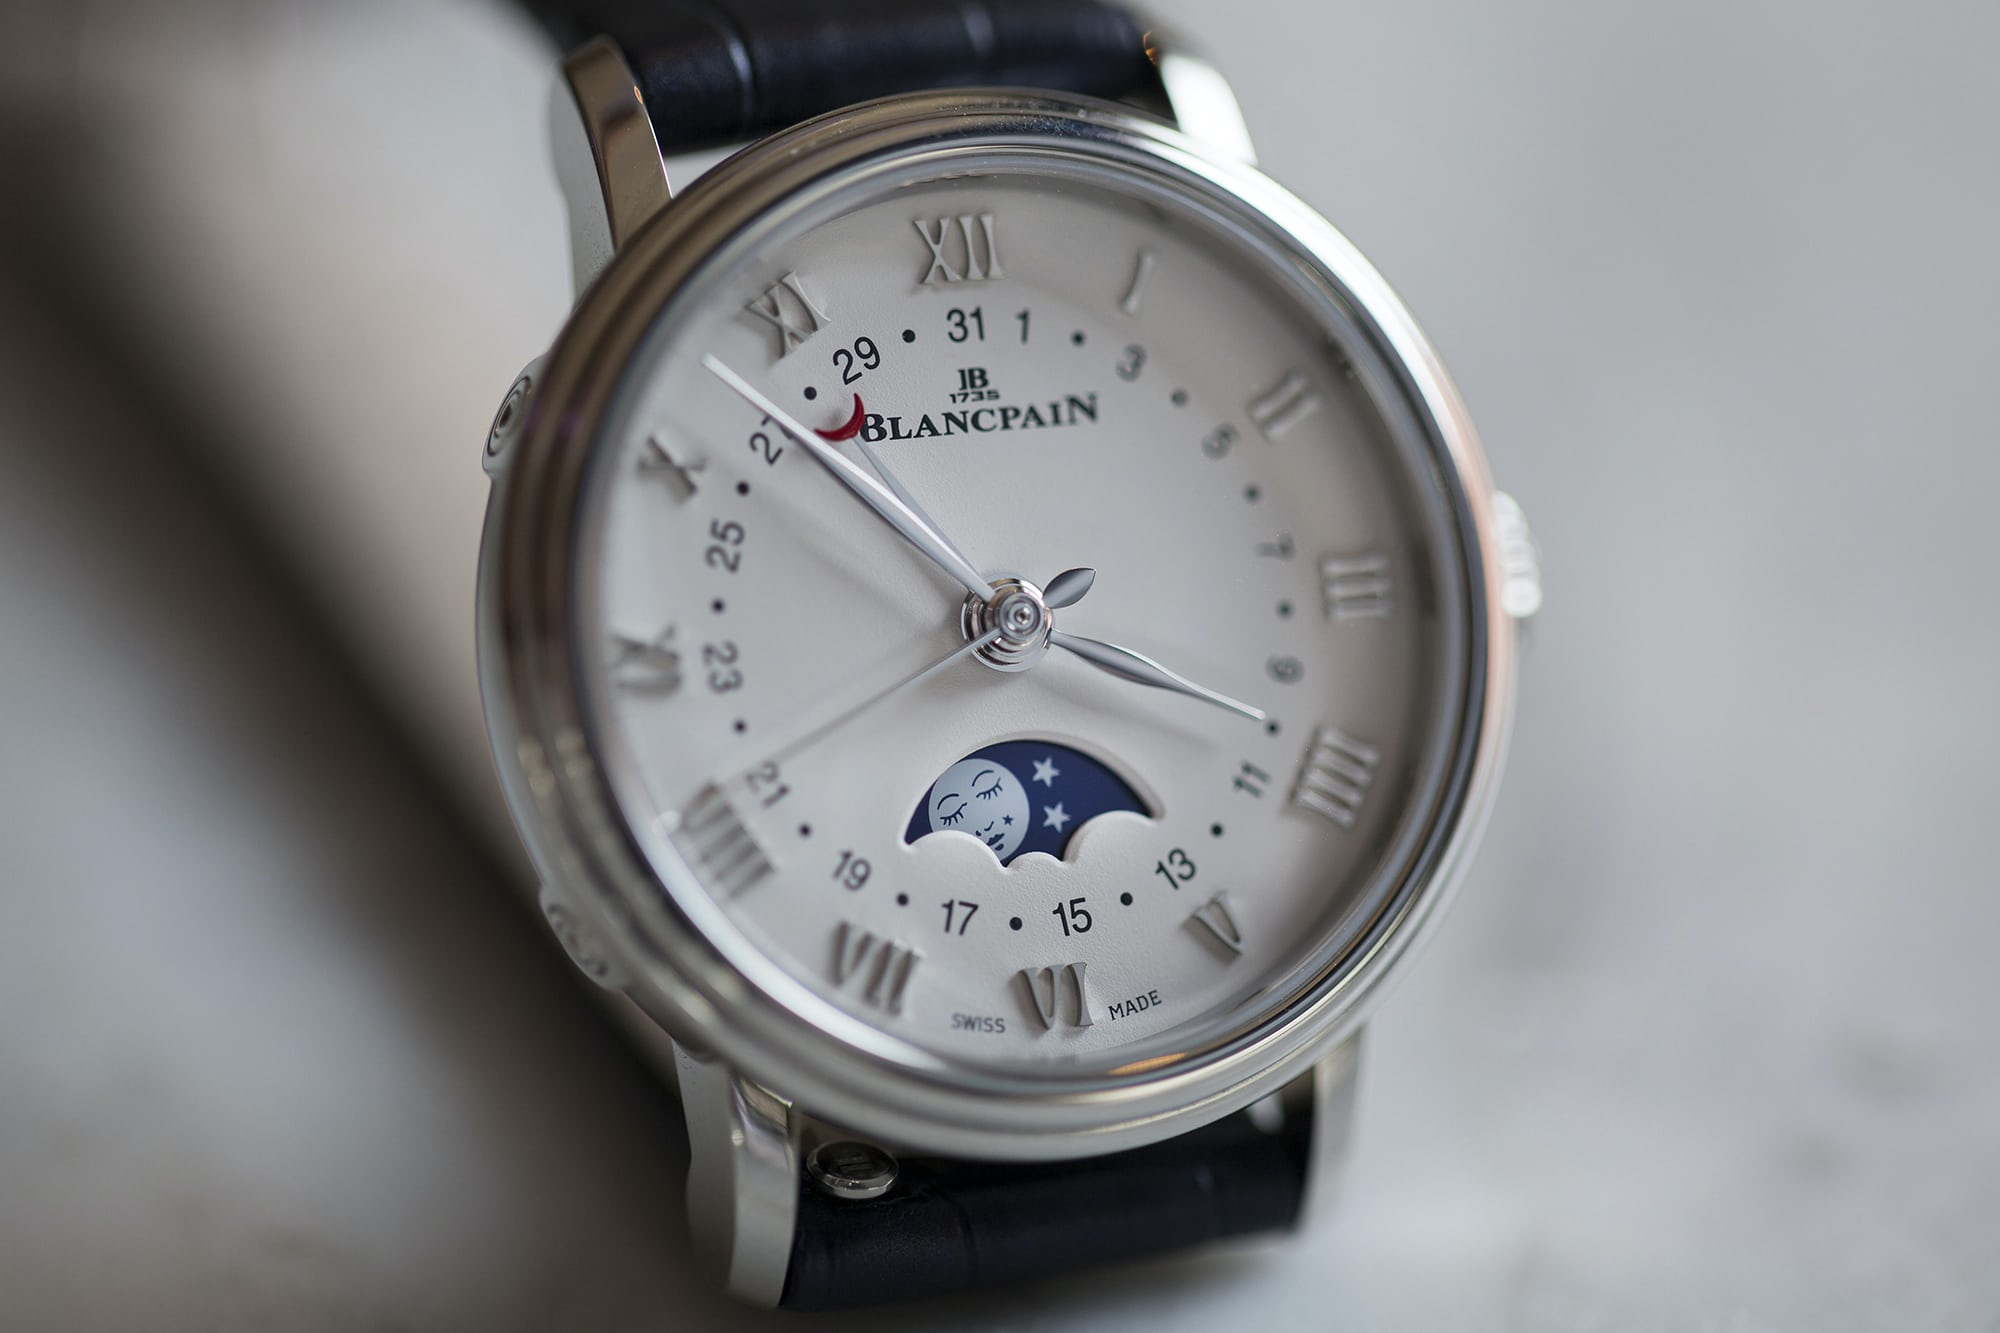 blancpain date moonphase hands-on: the blancpain villeret date moonphase ladies' watch Hands-On: The Blancpain Villeret Date Moonphase Ladies' Watch B89A3642 copy